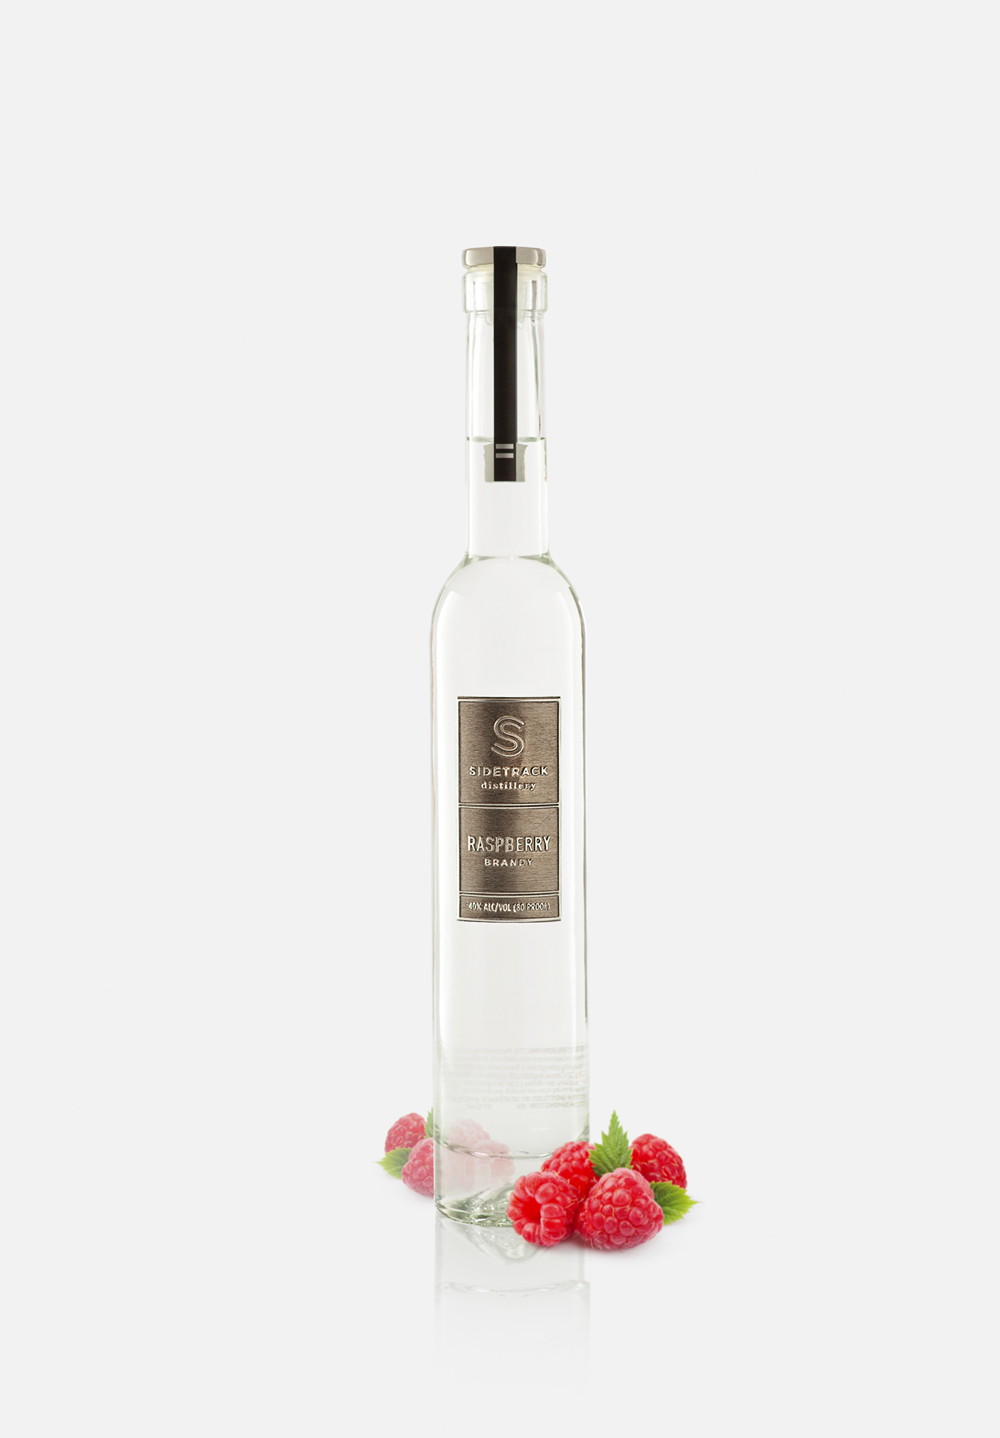 Raspberry Eau De Vie - This Eau de Vie, also known as Framboise, won Gold Medal, Best of Category at the American Distilling Institute. A lingering finish with the taste of fresh raspberry, enjoy this 'neat' for a true European taste of the 'water of life!'